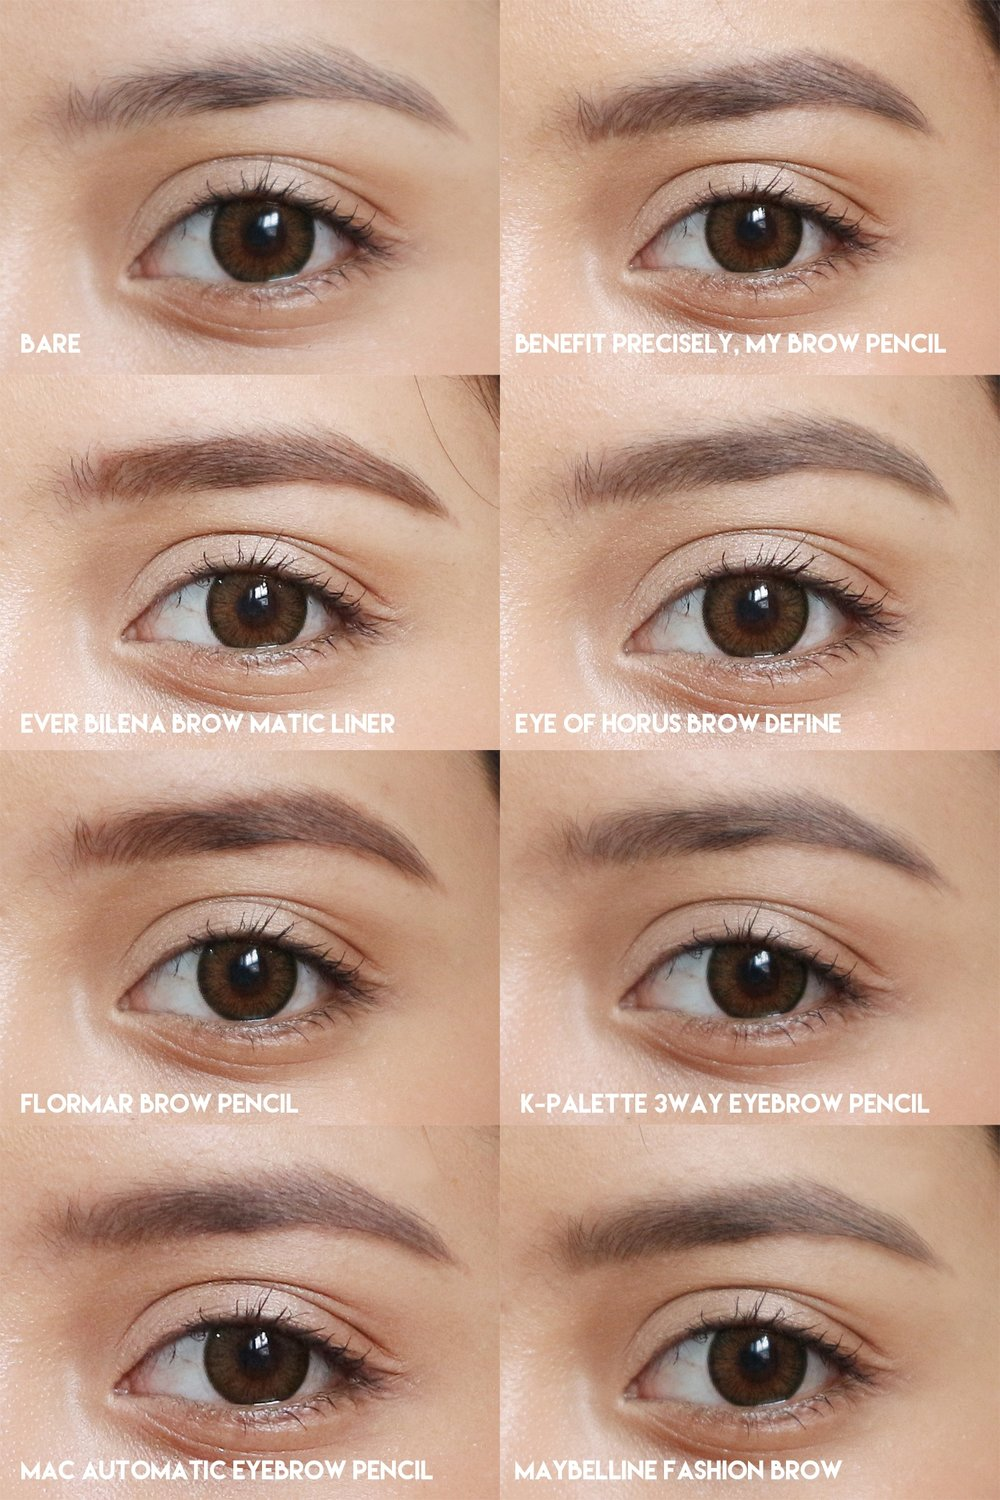 418558f6d23 The Battle of the Eyebrow Pencils: Which brand wins? — Project Vanity